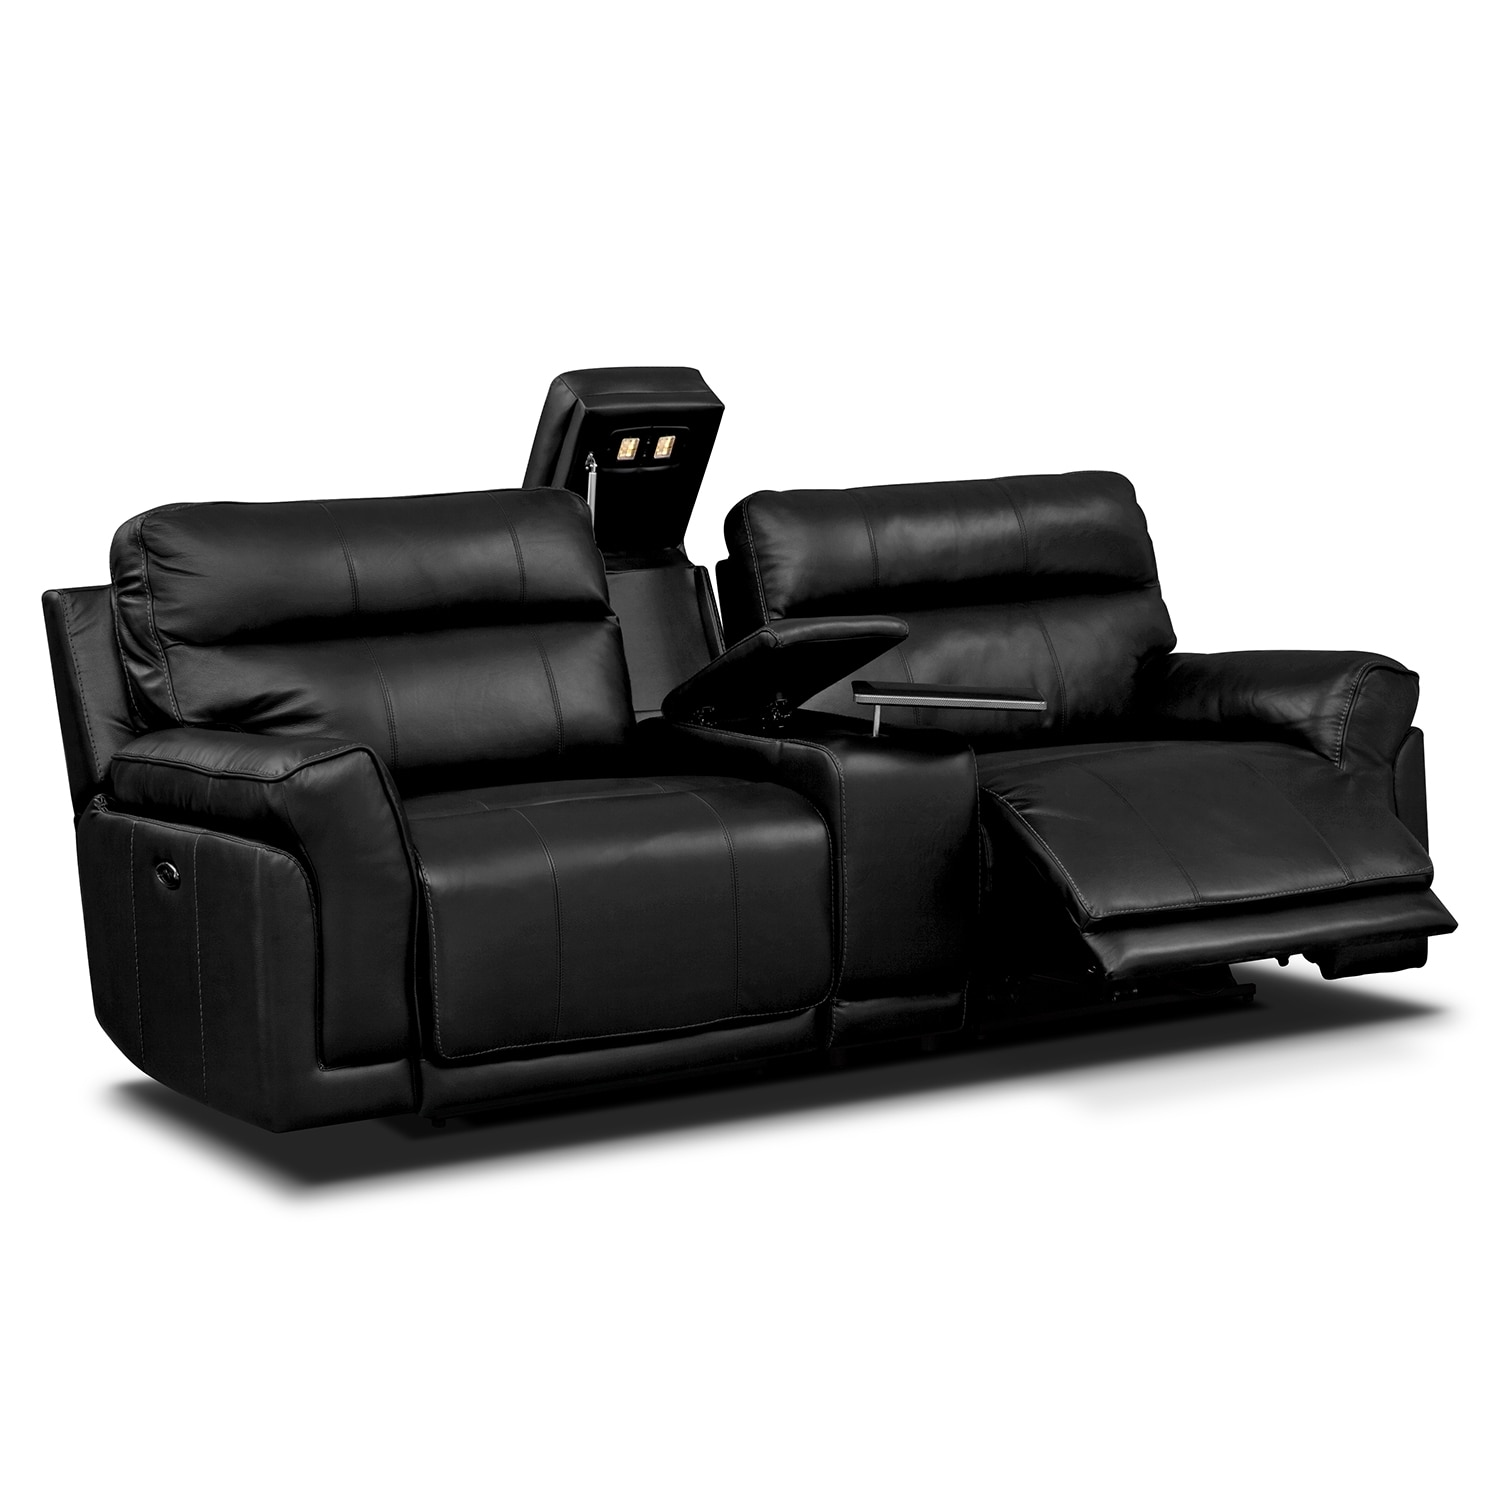 Antonio black power reclining sofa with console Power loveseat recliner